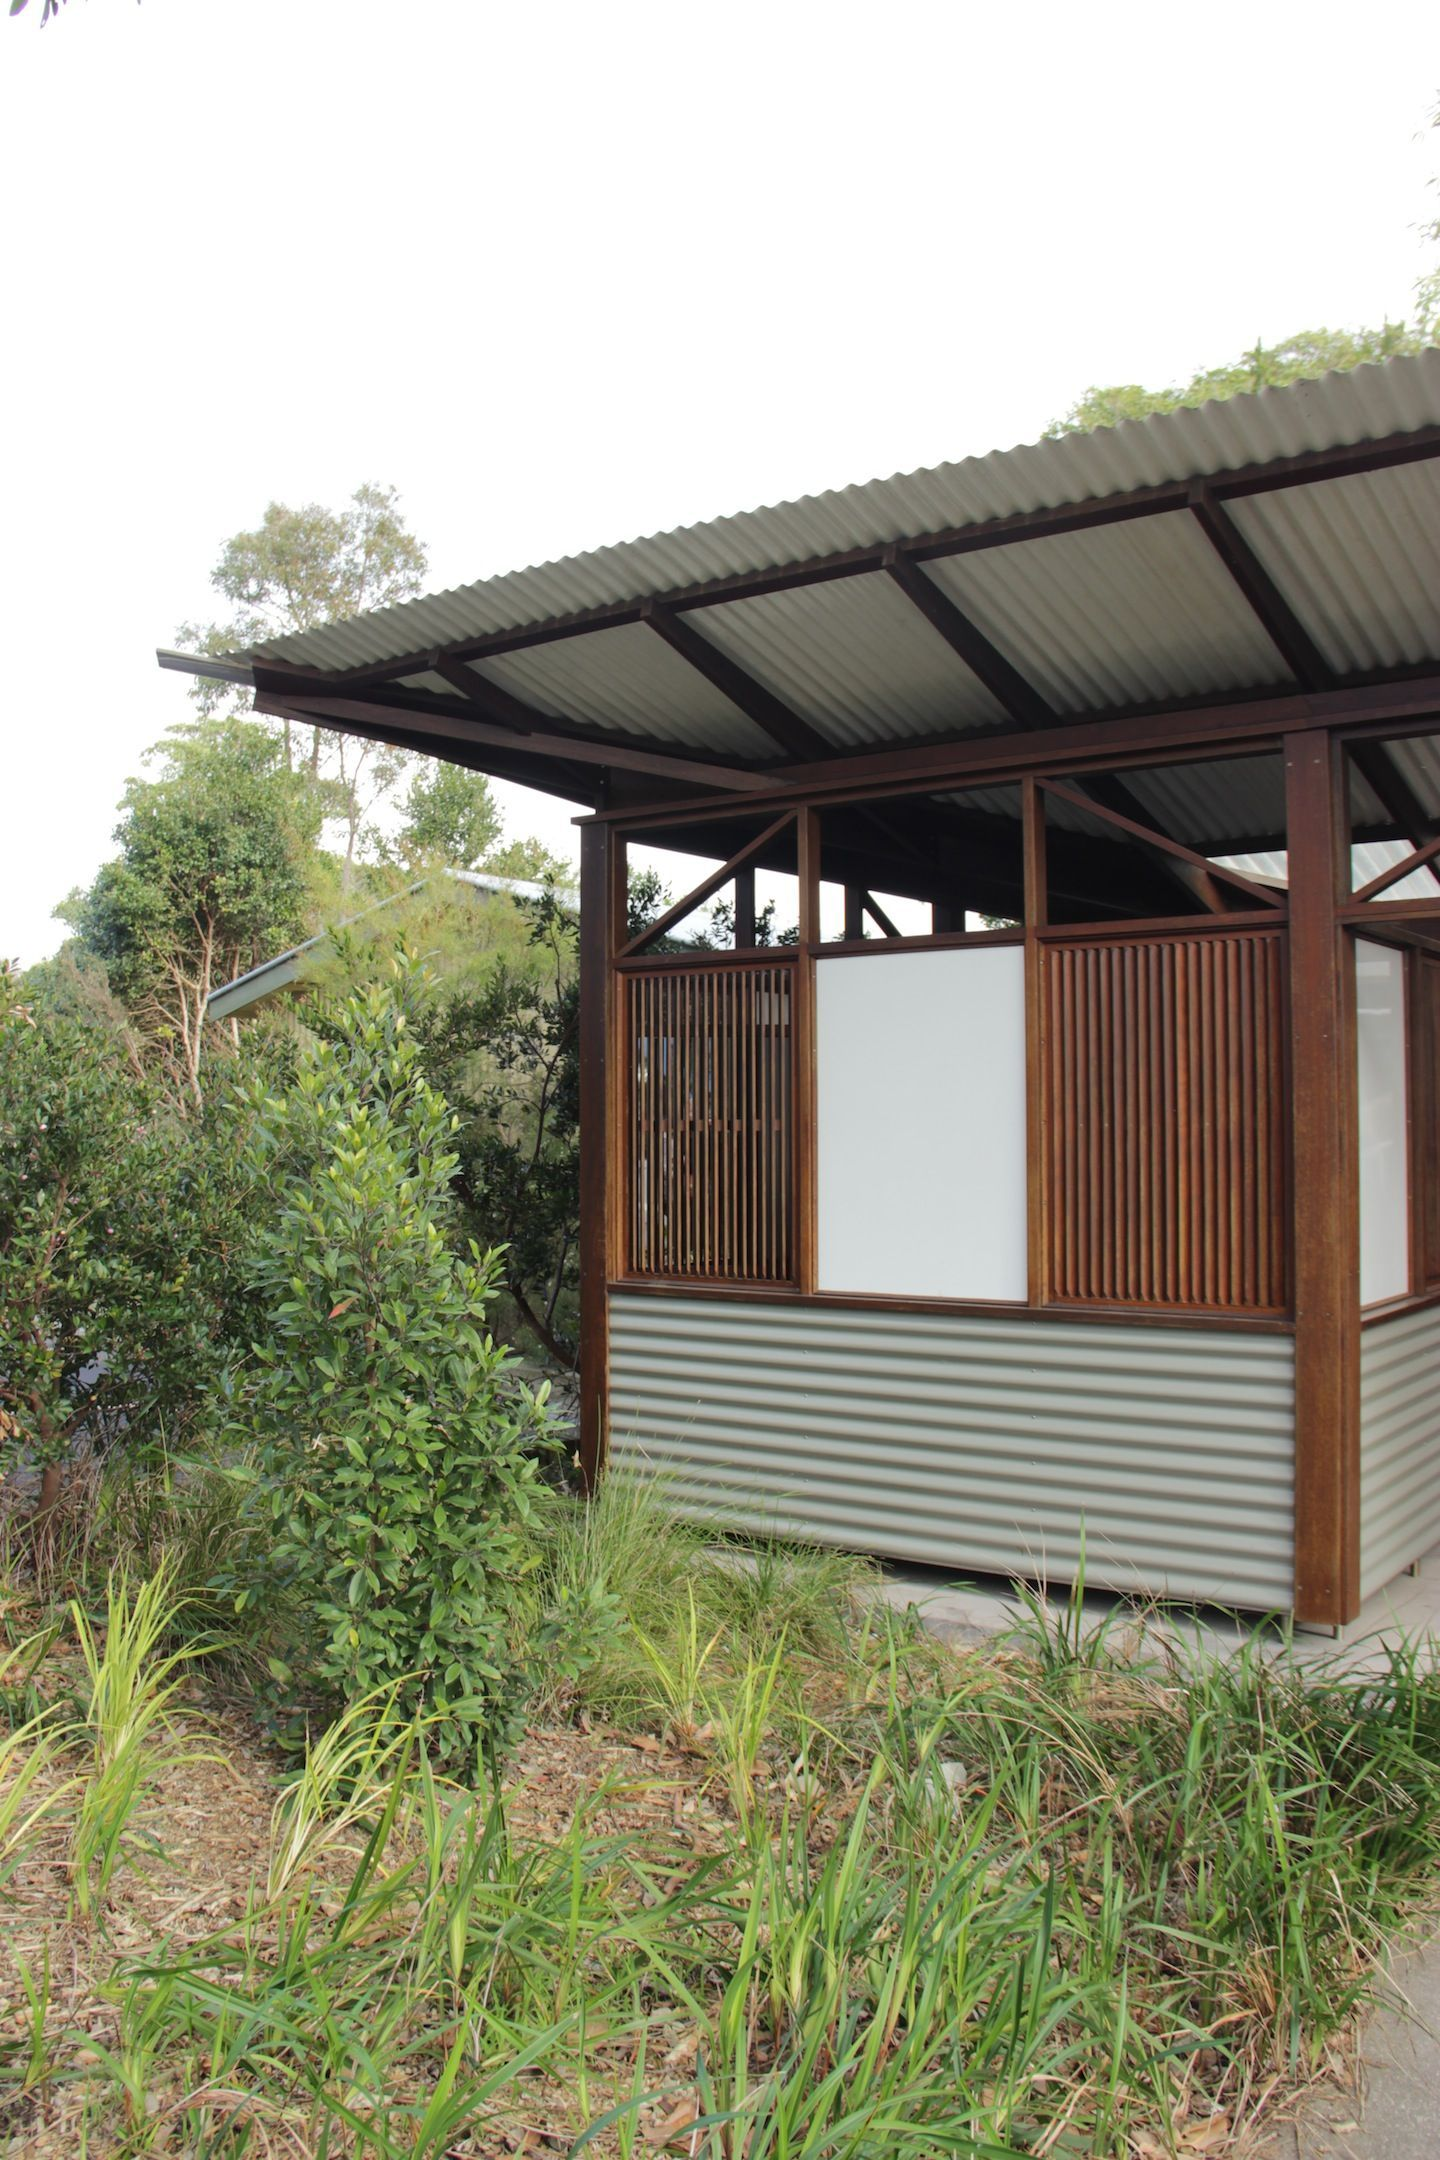 Image Result For Corrugated Steel Roof Overhang Timber Structure Corrugated Steel Roofing Architecture